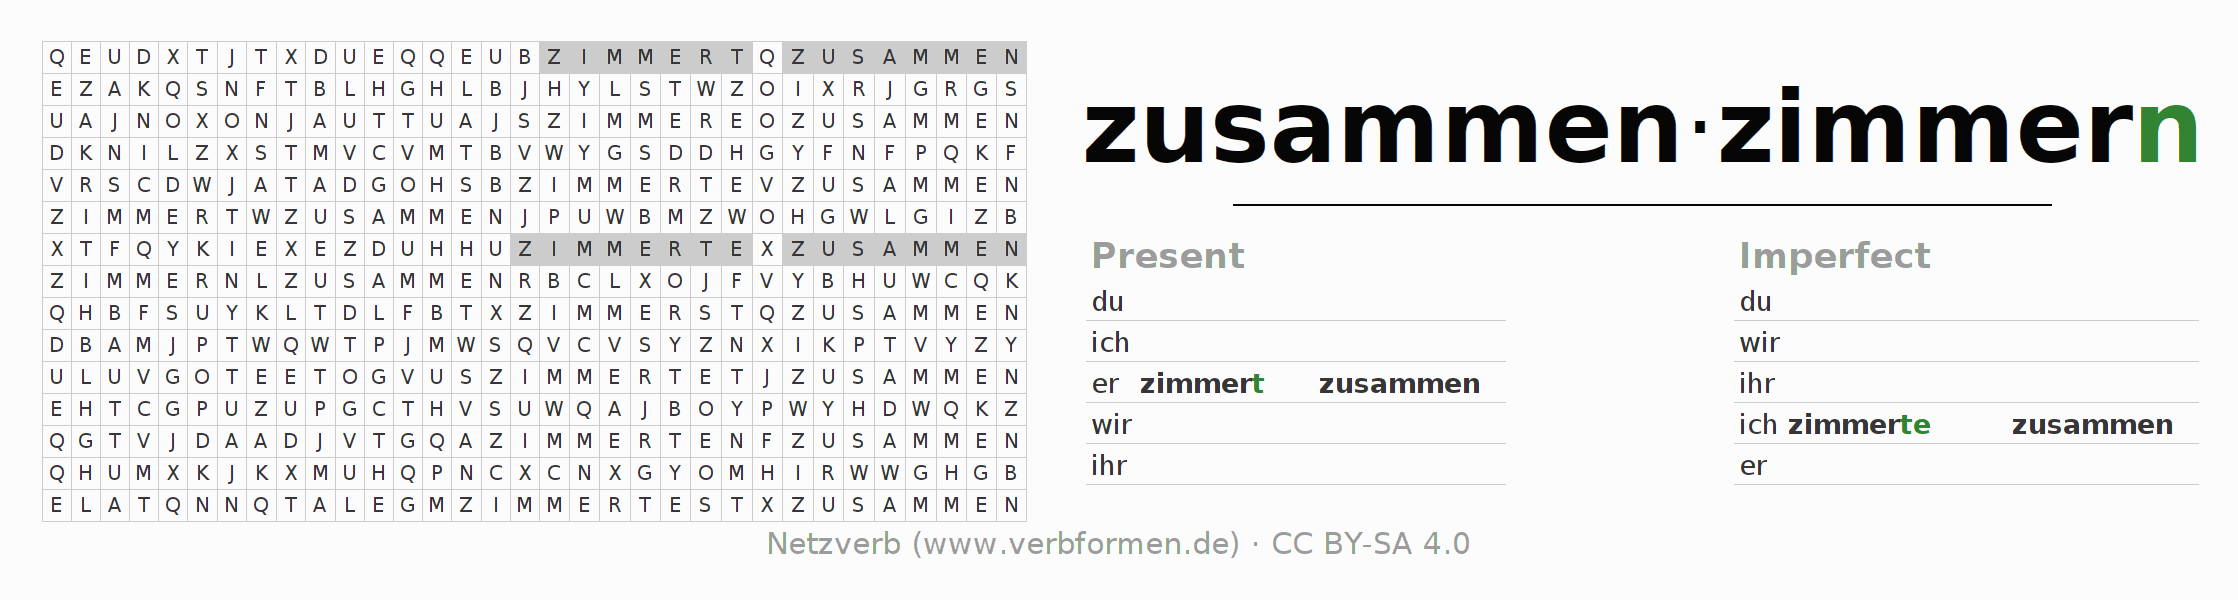 Word search puzzle for the conjugation of the verb zusammenzimmern